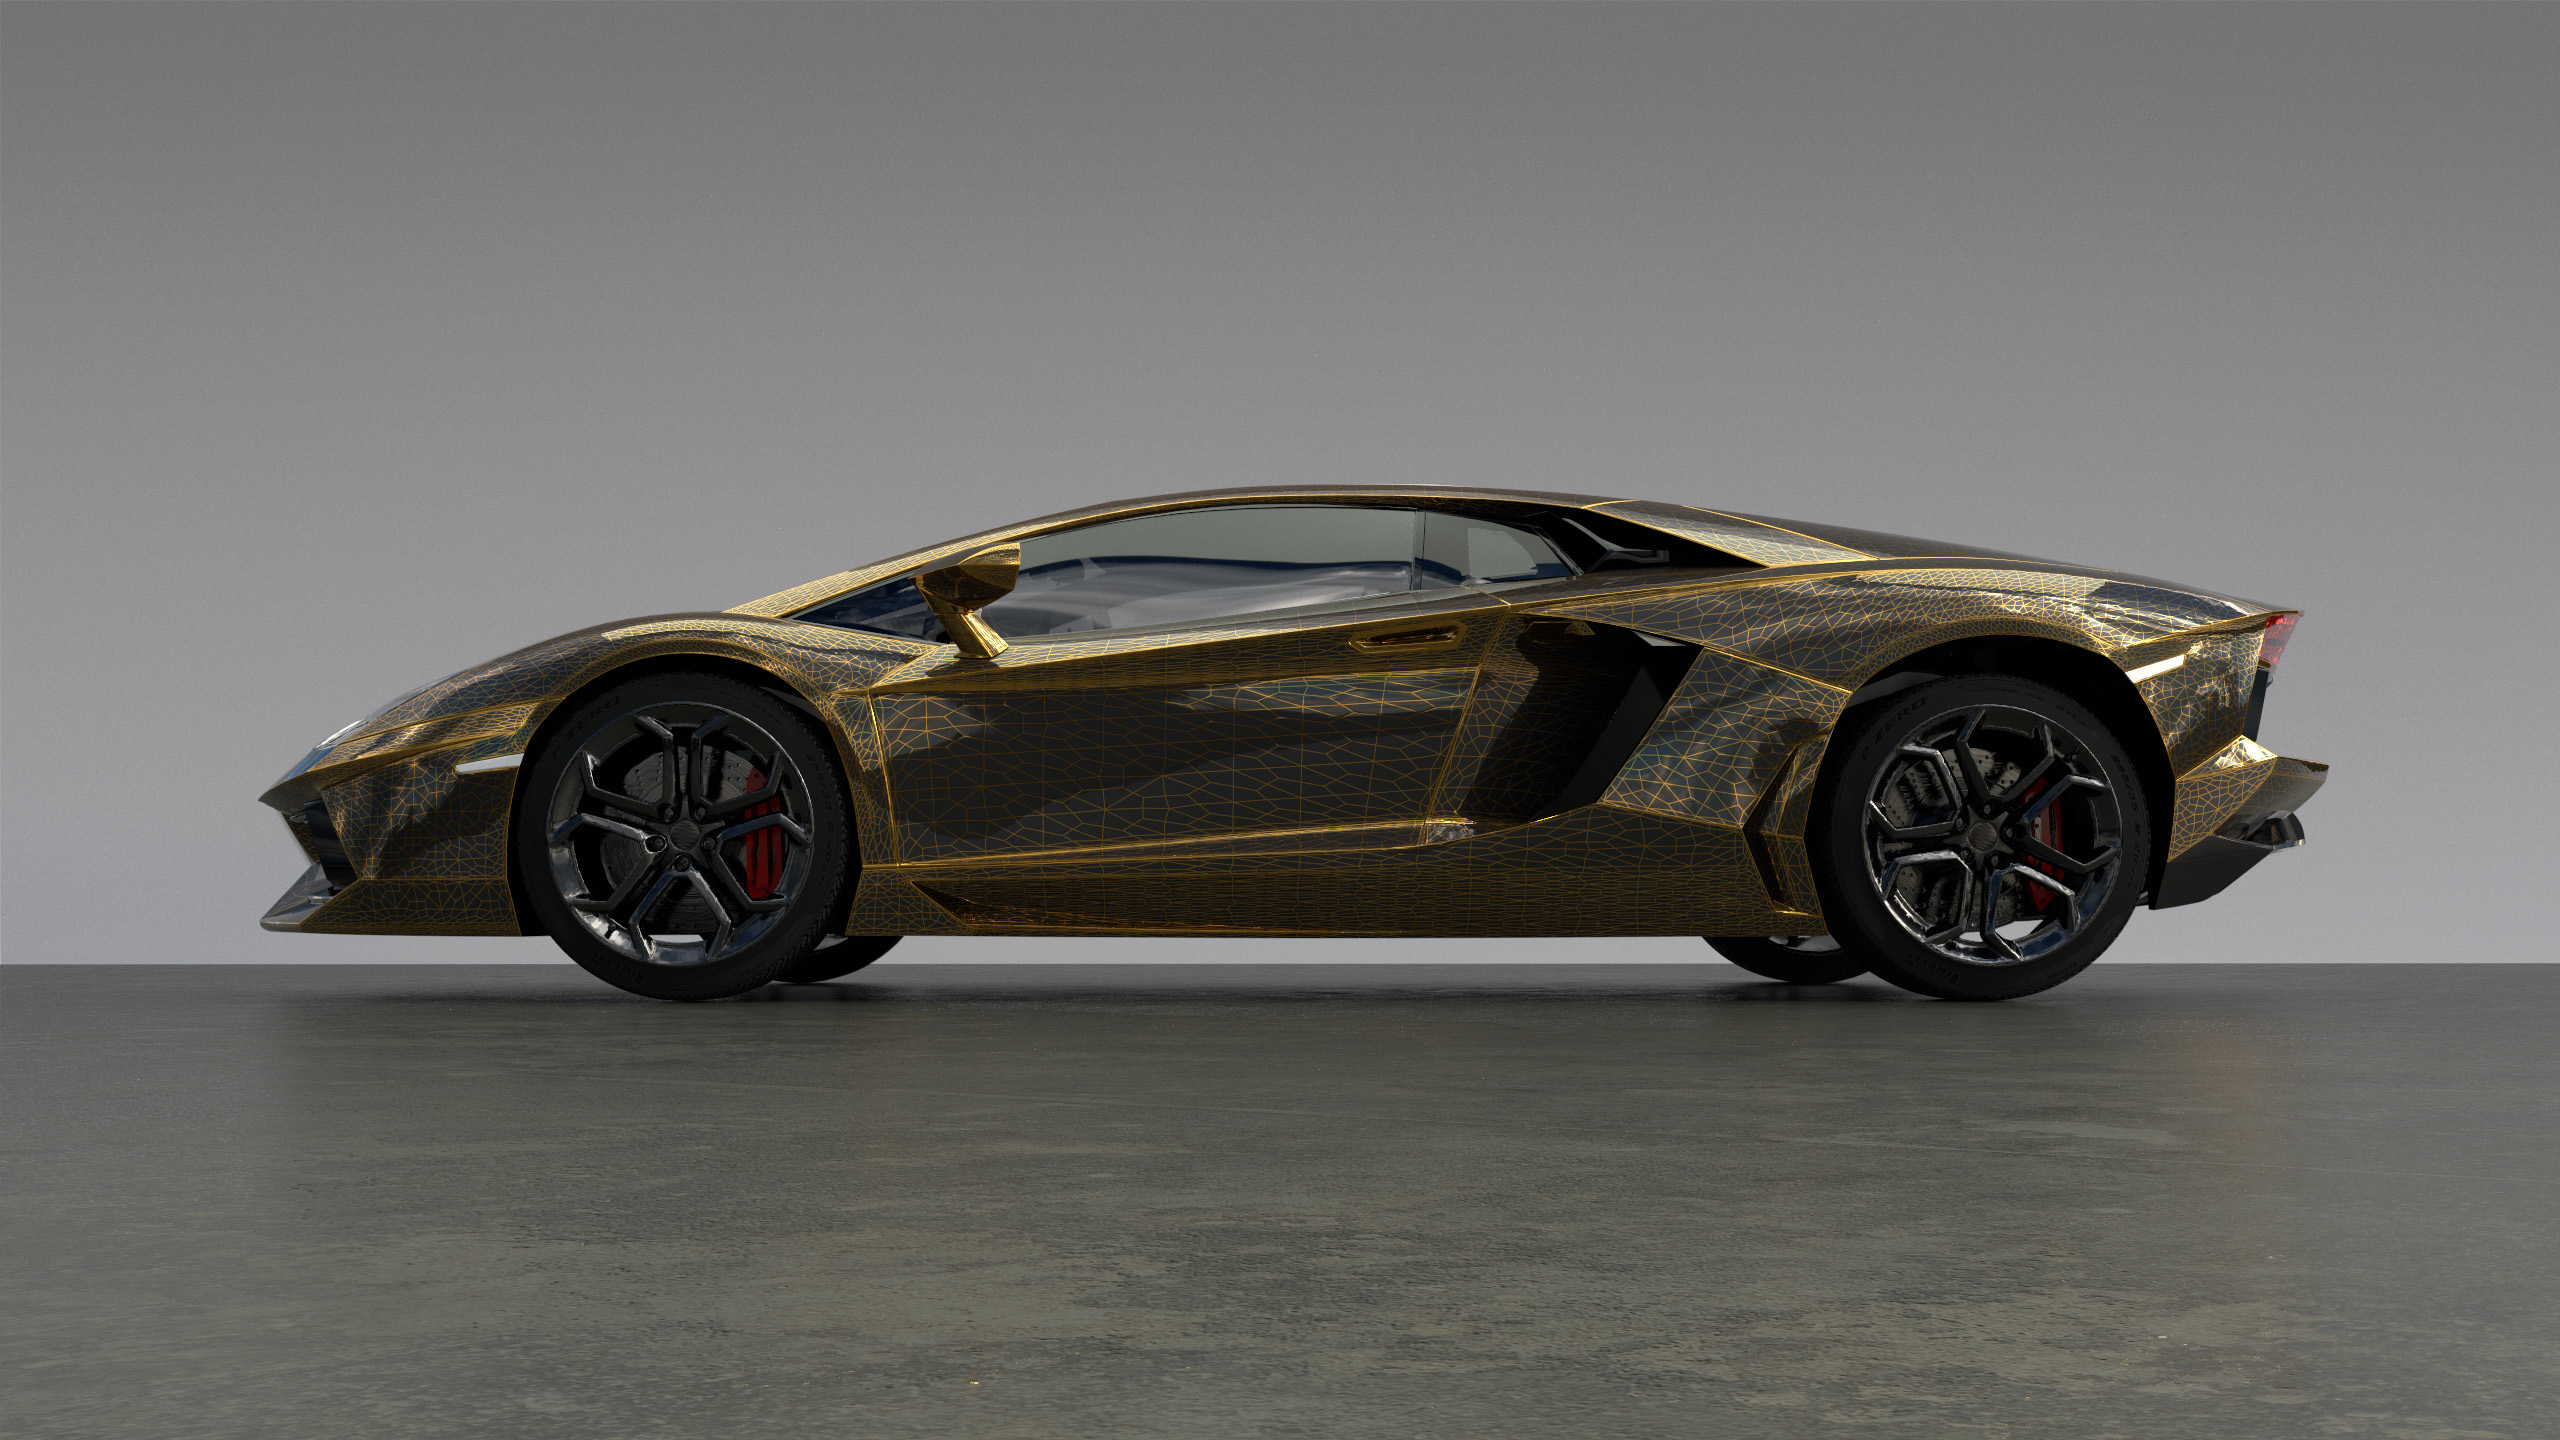 Figure 6: An outrageous Aventador paint scheme using a procedural wireframe texture to blend between black and metallic gold car paint.